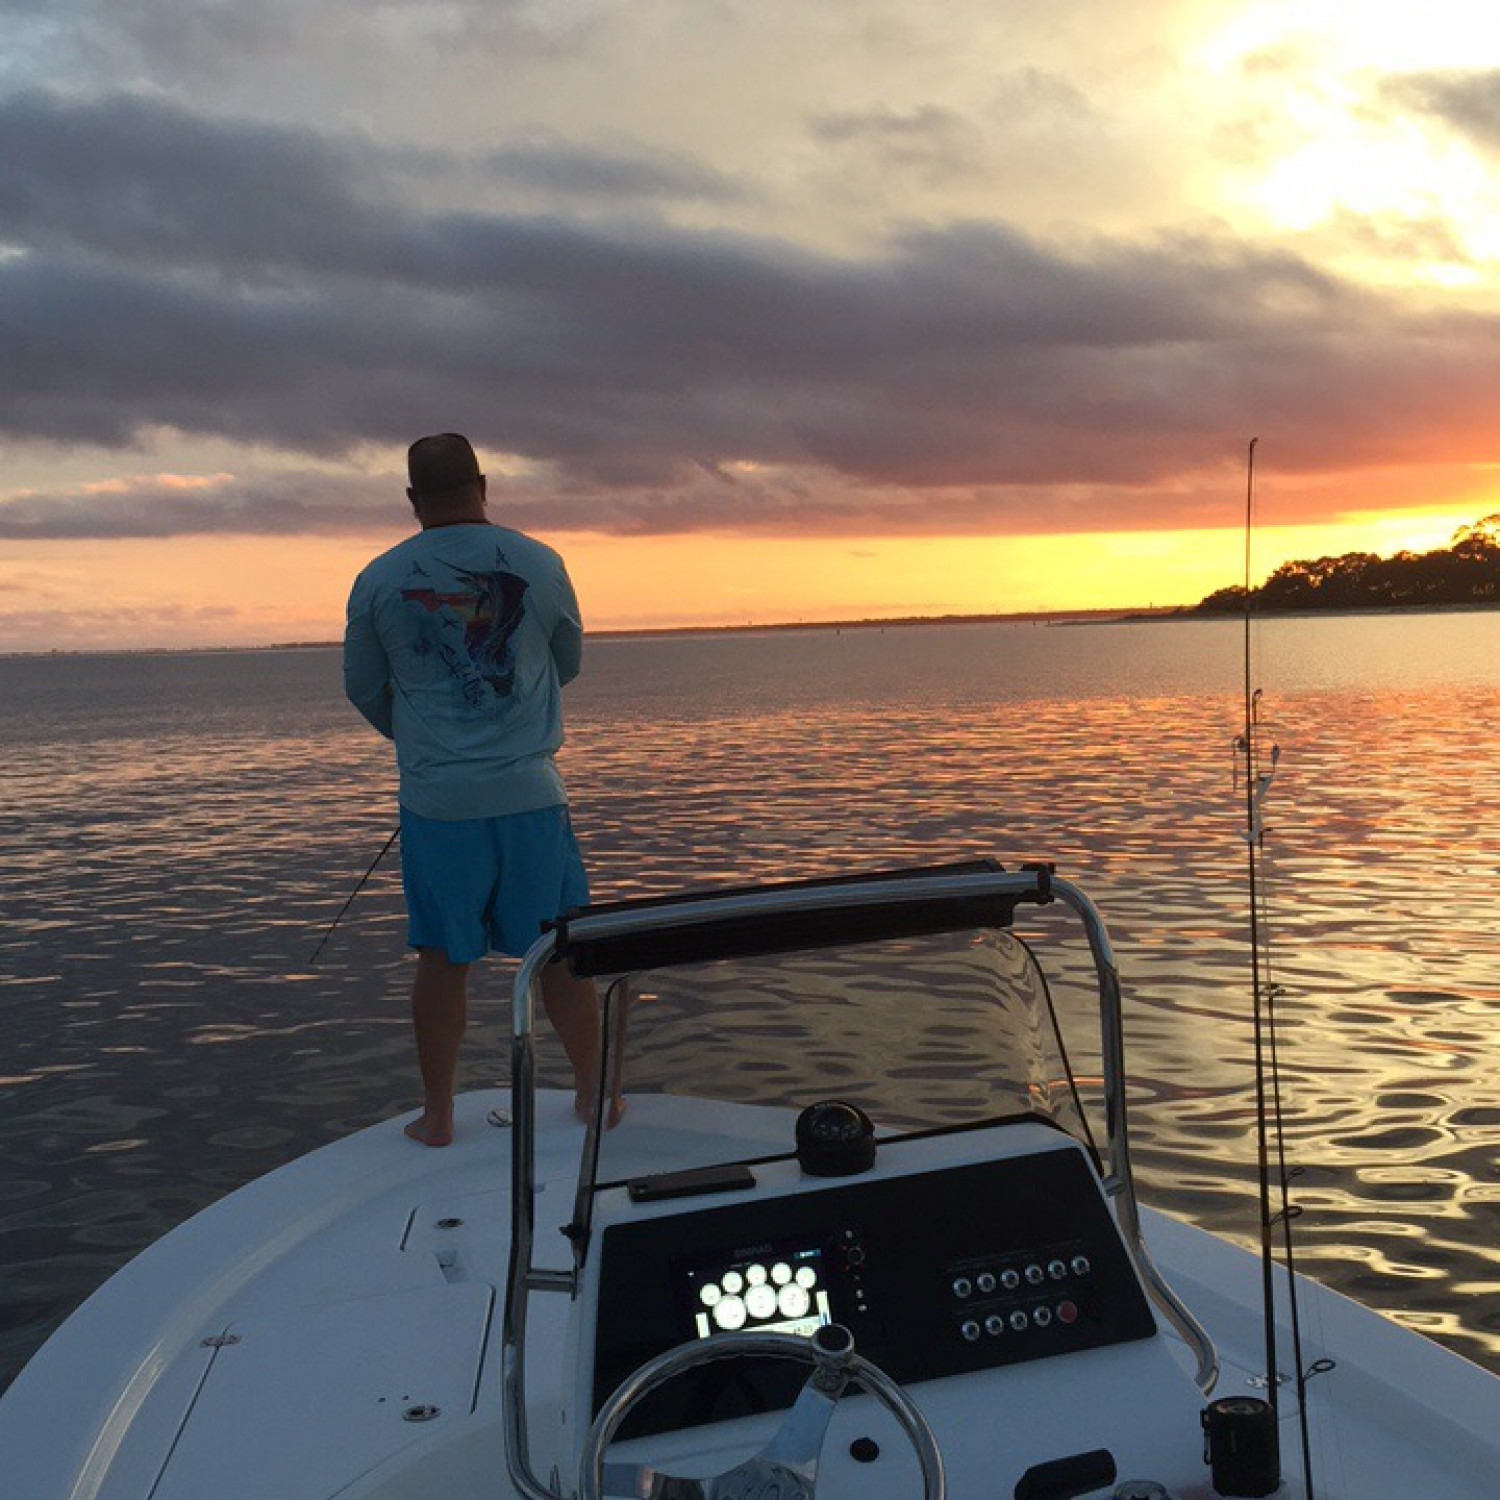 Title: Fishing In the Bay - On board their Sportsman Masters 207 Bay Boat - Location: Niceville,FL. Participating in the Photo Contest #SportsmanDecember2017